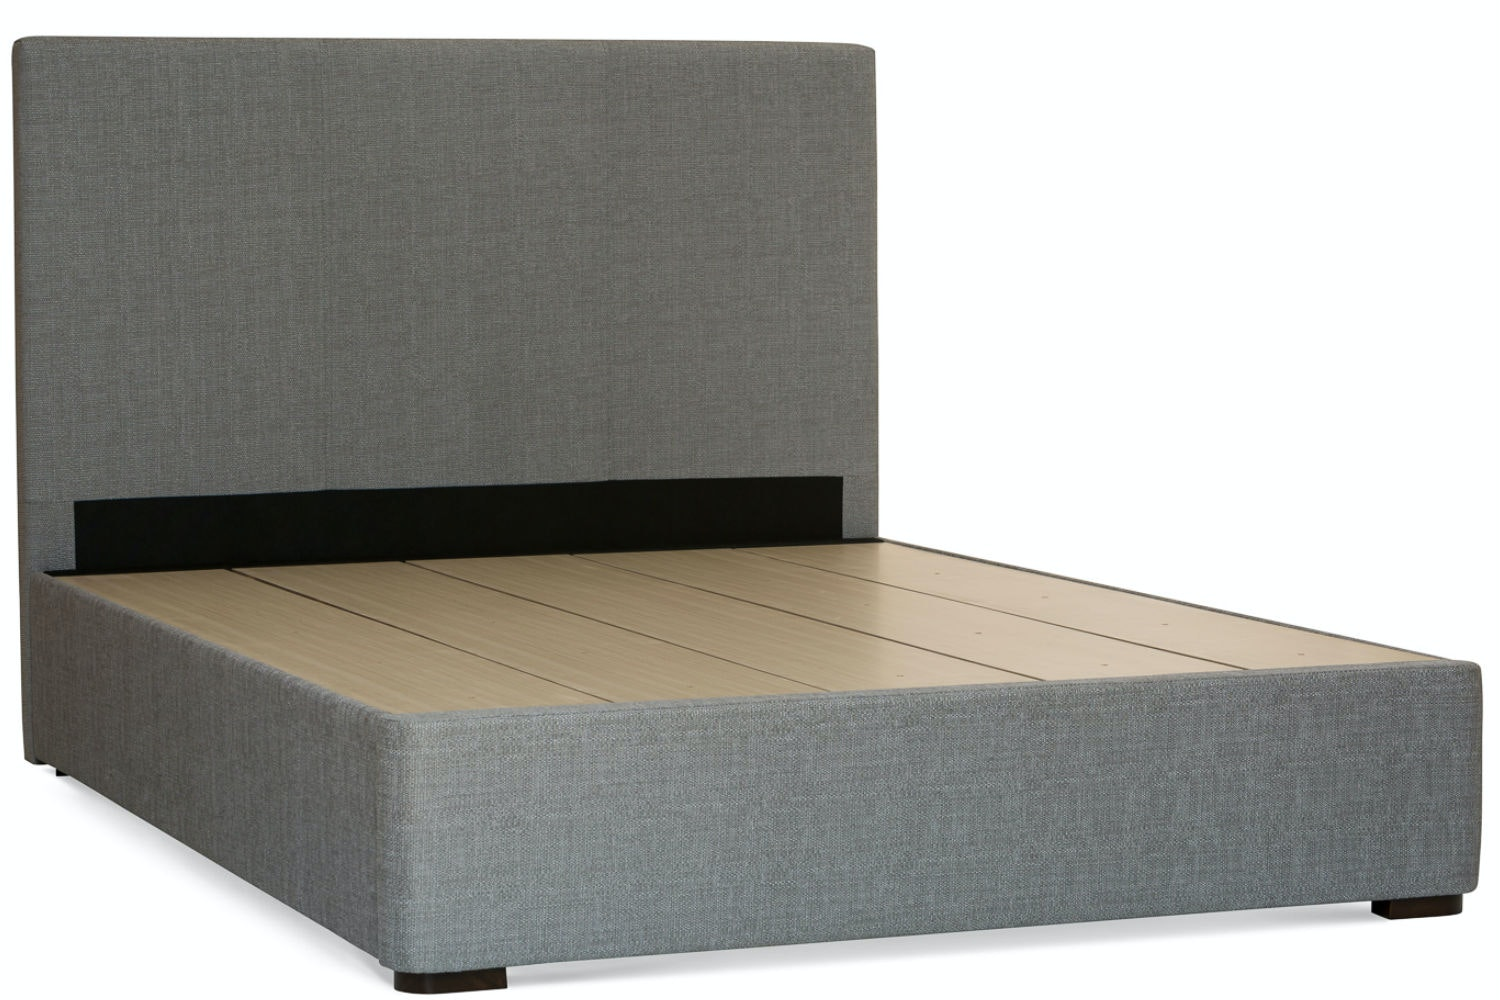 Duval 5' Bed Frame | Grey | Vertical Stitch